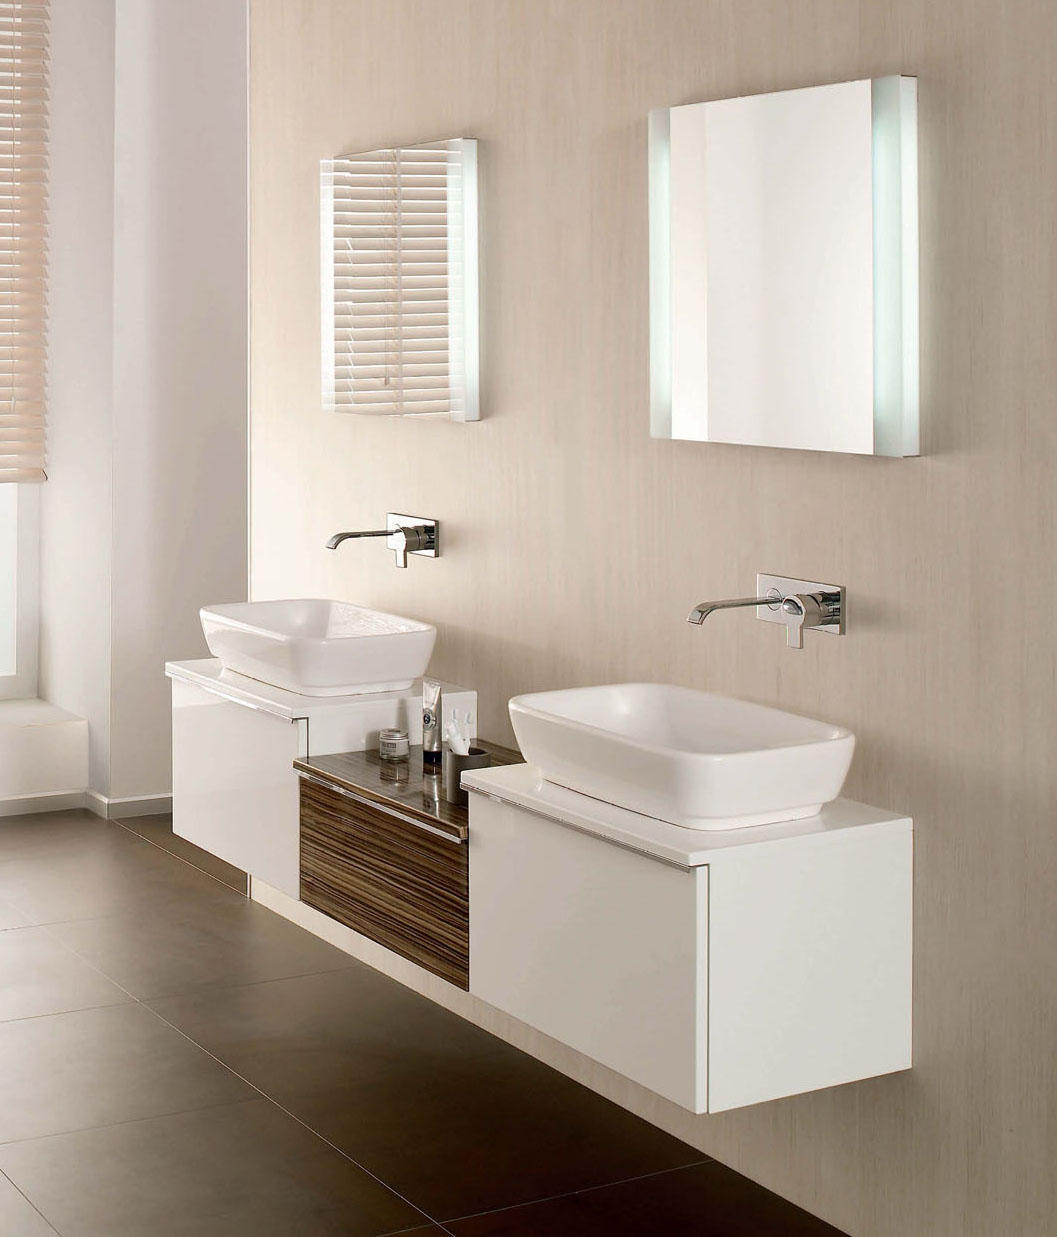 Vitra Badewanne Shift Pure Bathtub Bathtubs From Vitra Bad Architonic